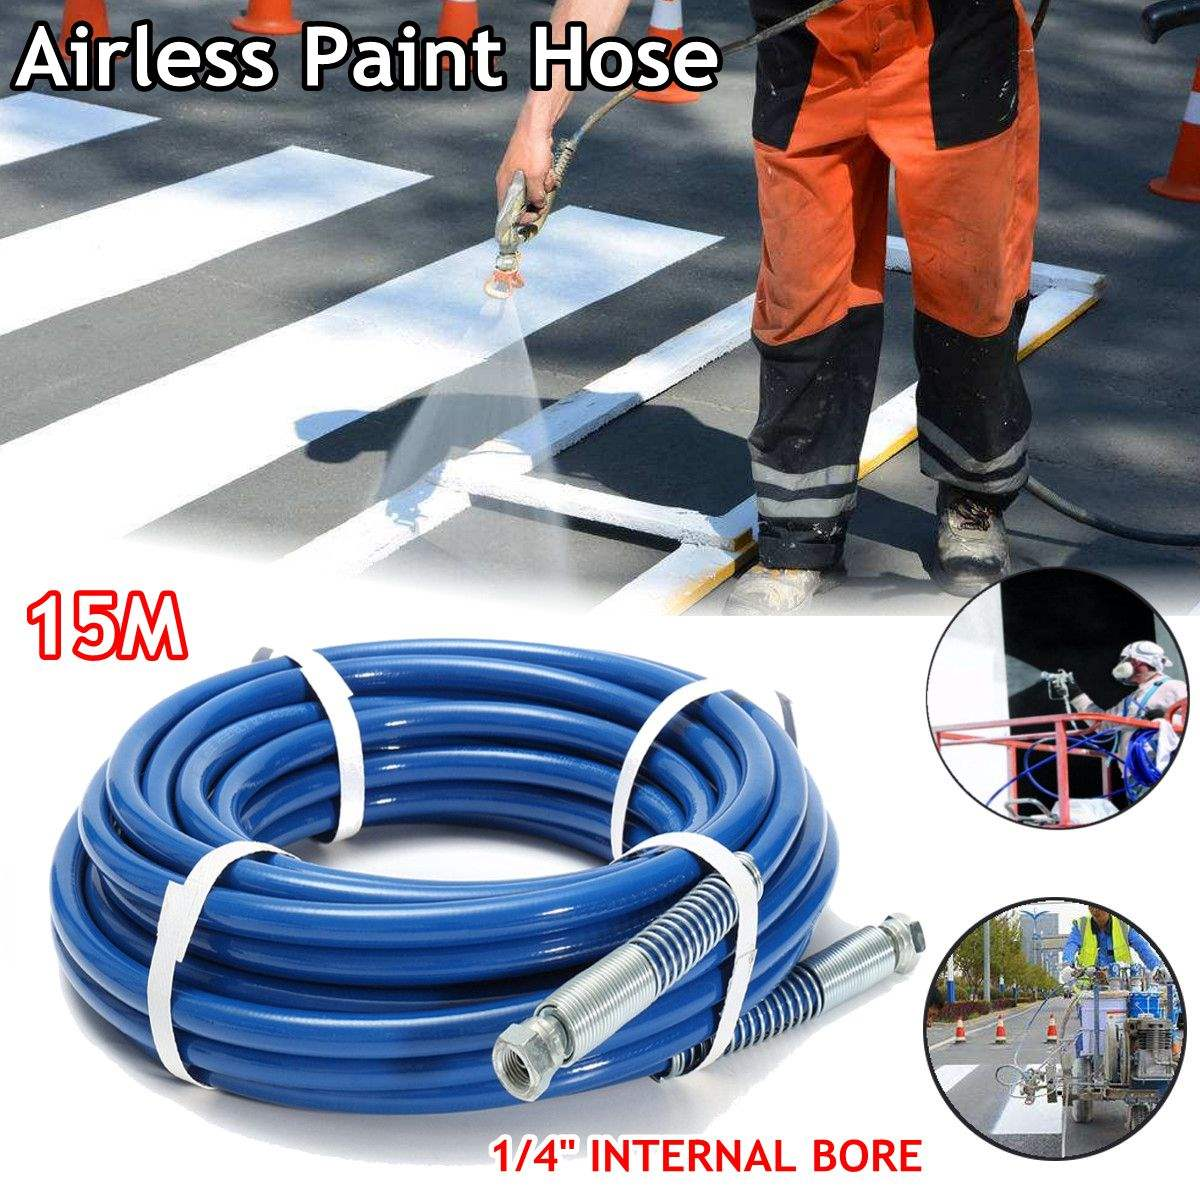 15m 1/4'' High Pressure Expandable Magic Flexible Hose Plastic Hoses 3300PSI Max Airless Paint Spray Hose Tube alfani new gray asymmetrical open front womens large l cardigan sweater $59 071